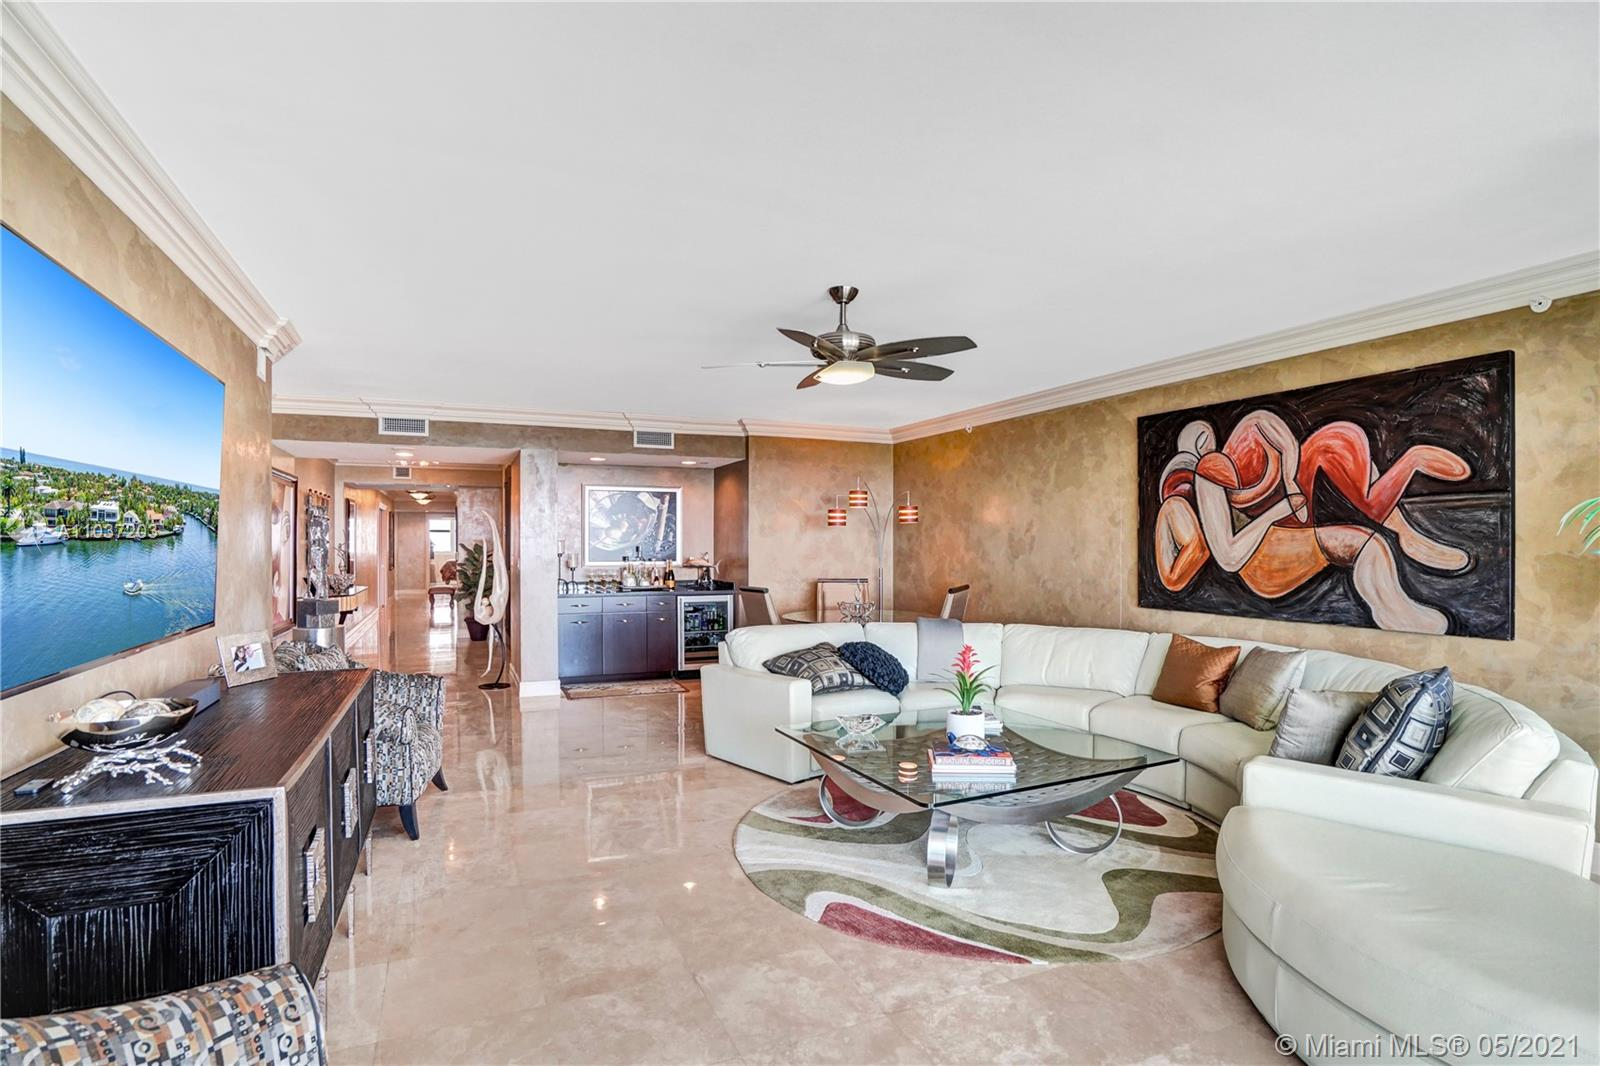 Photo of 20201 Country Club Dr #1006, Aventura, Florida, 33180 - Living room and build-in bar.